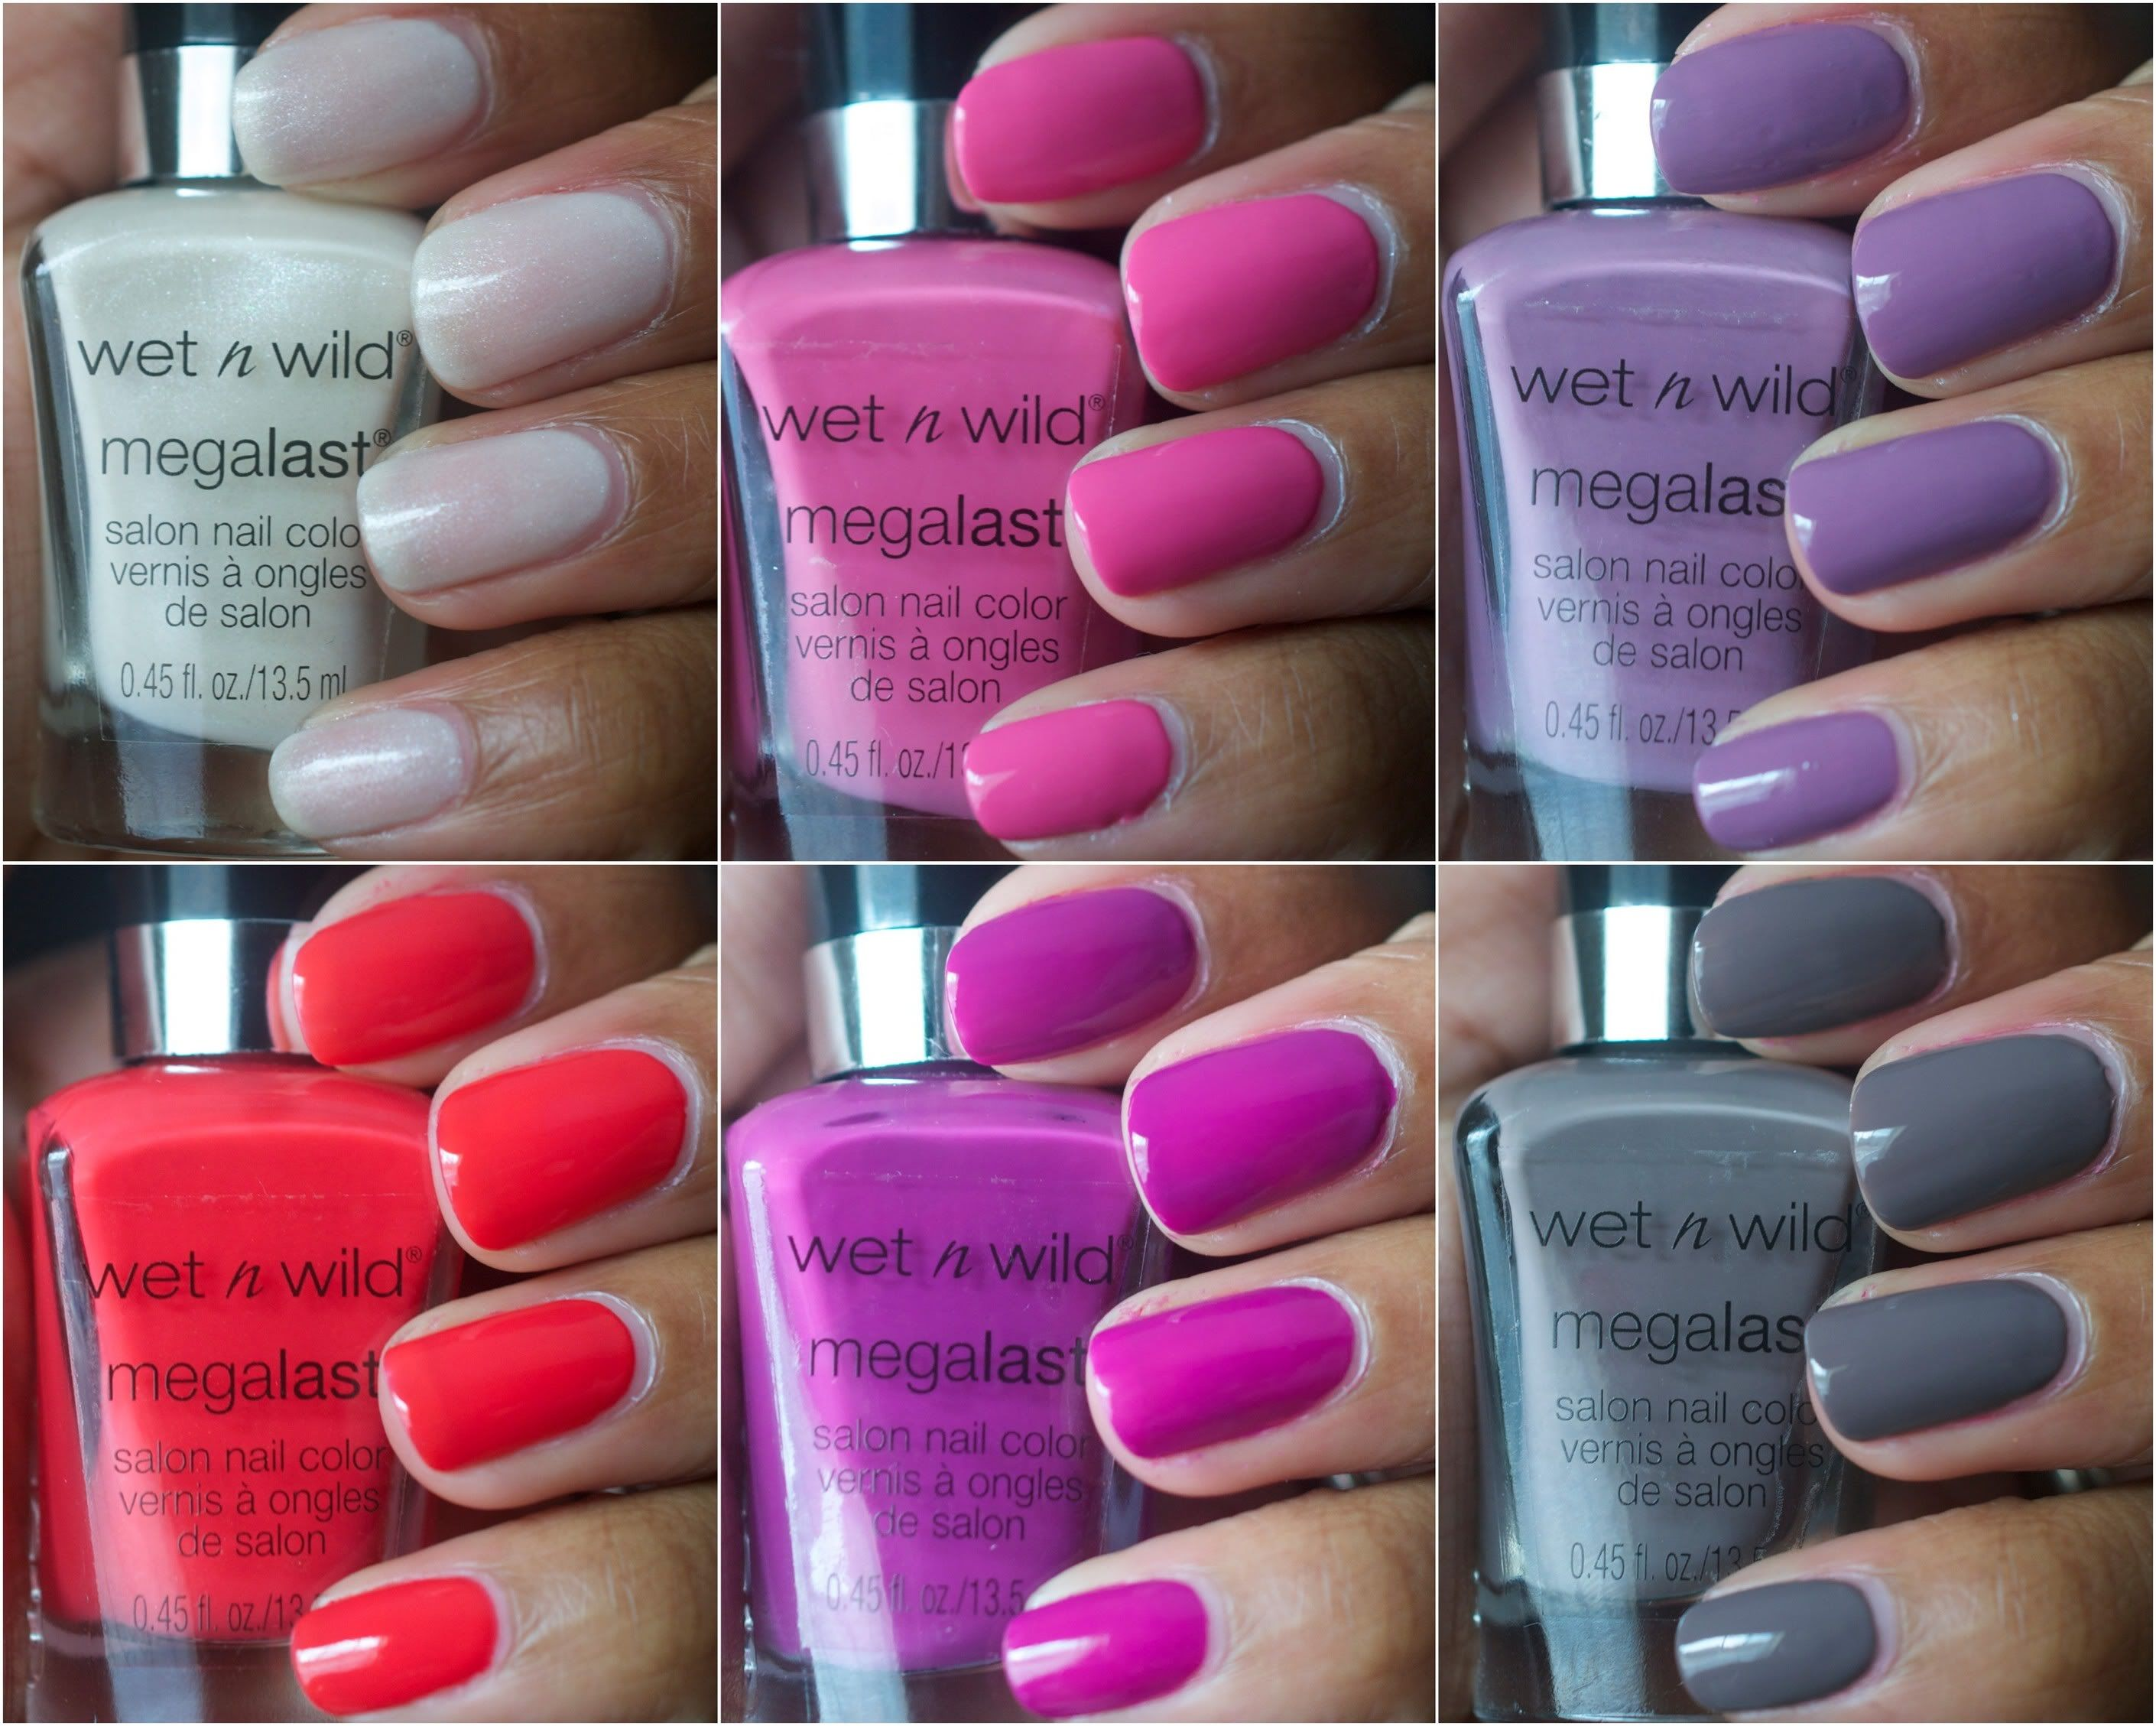 wet n wild brushes names. wet \u0027n wild megalast polishes-the best! $2 a bottle and great wide n brushes names